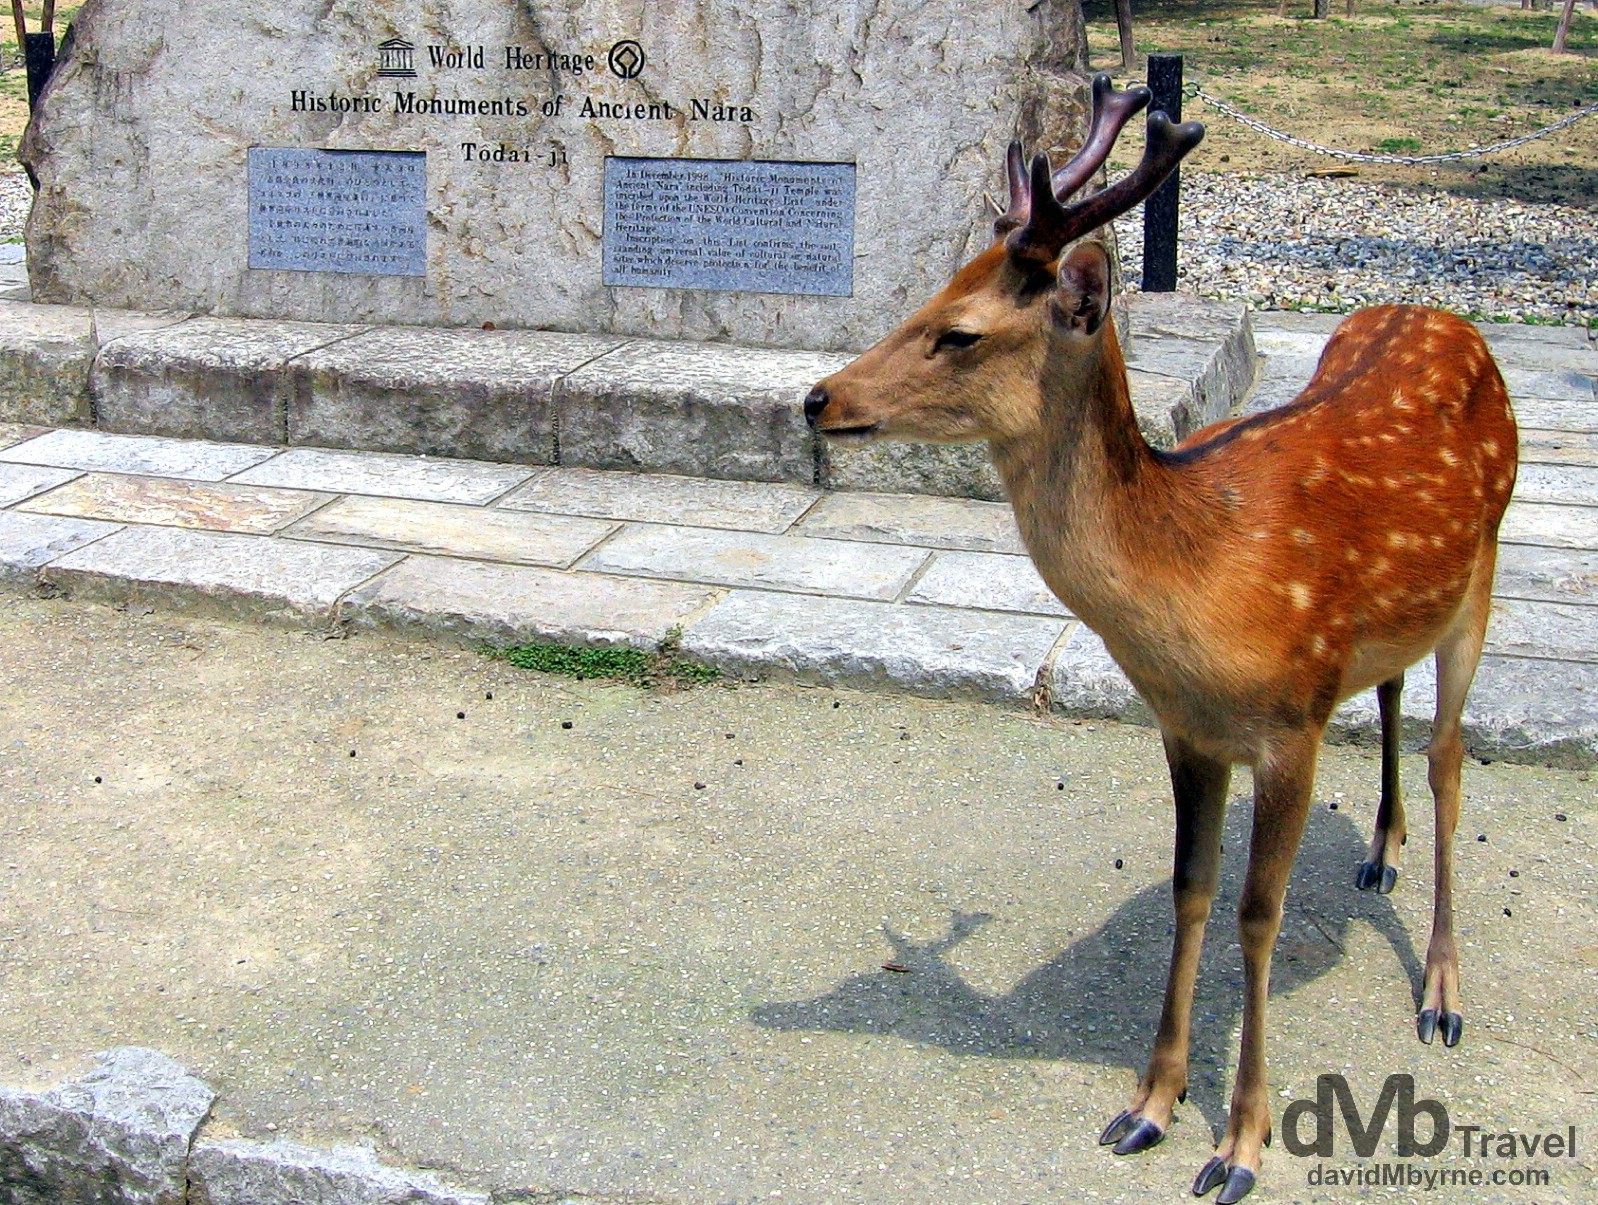 A deer fronting the UNESCO plinth in Nara Koen (Park), Nara, Honshu, Japan. July 19th, 2005.